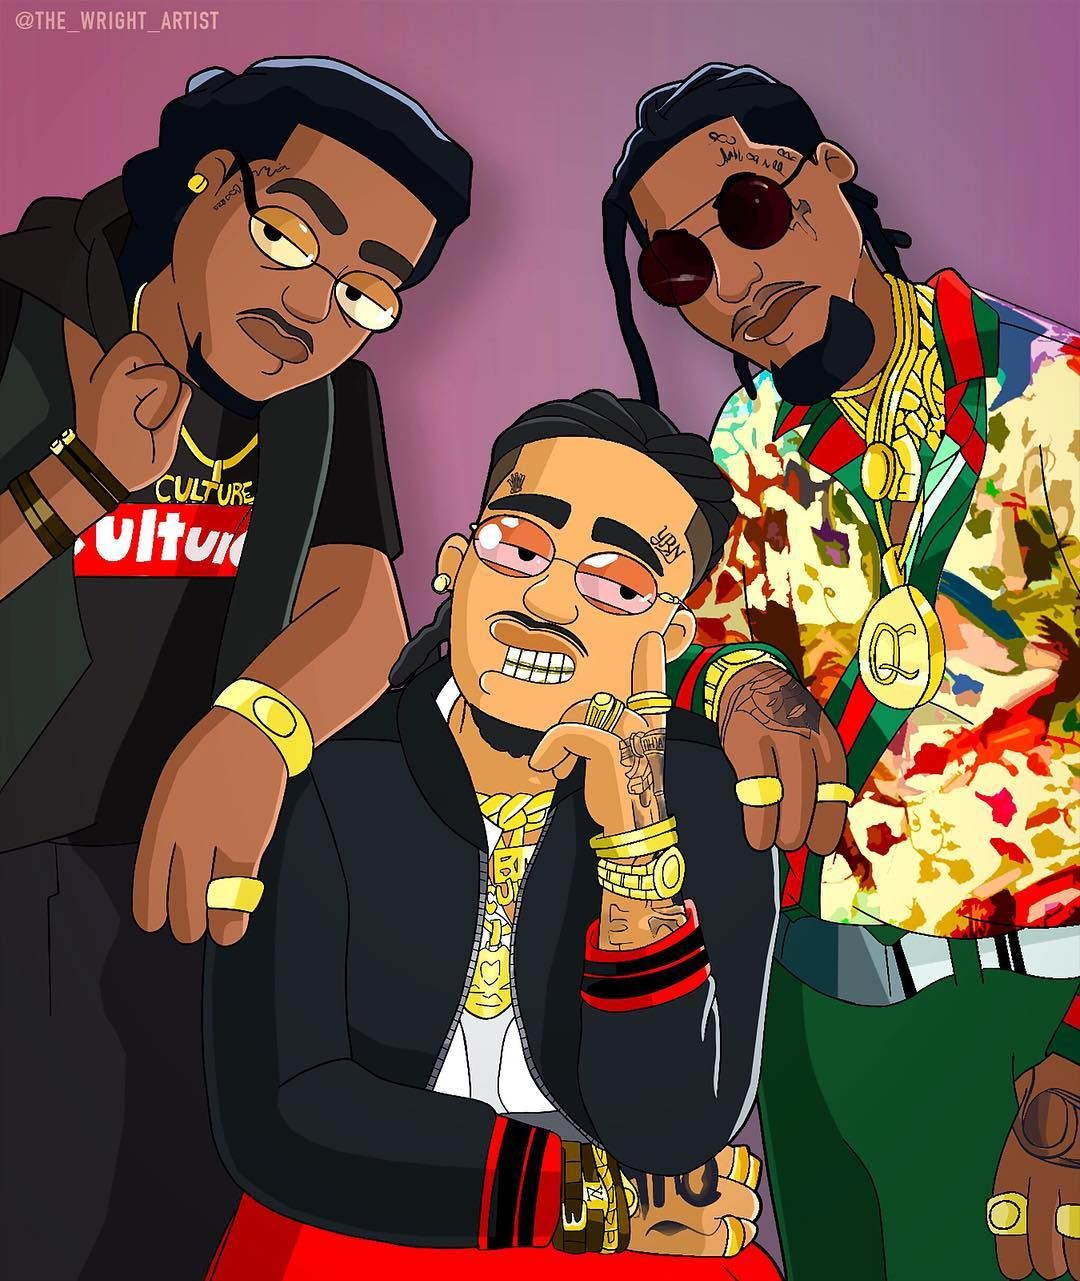 A Z Cartoon Characters Rap : Migos family guy style comikz comedy art pinterest